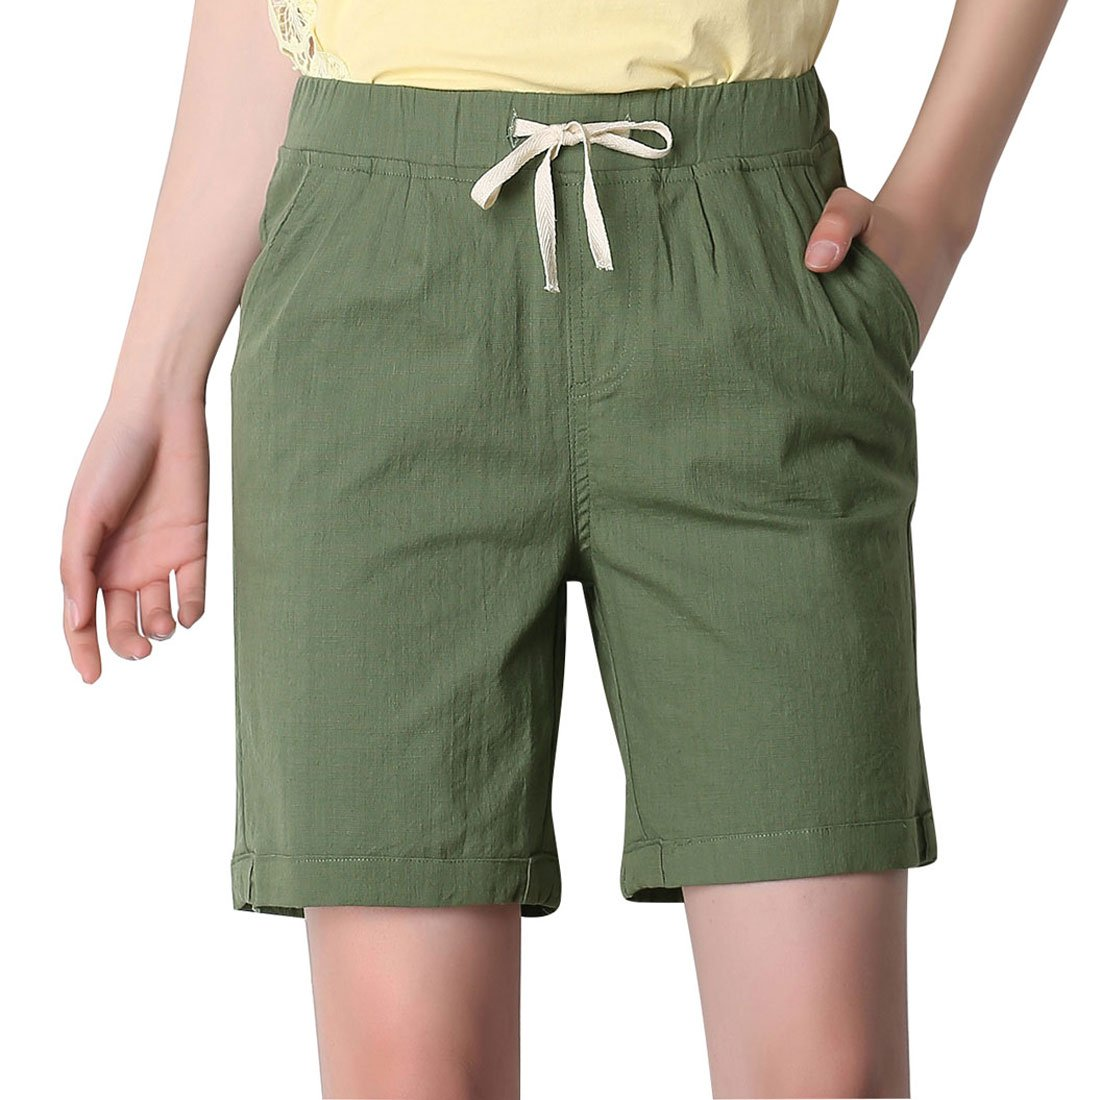 0172a5085f Chartou Women's Modest Loose Elastic-Waisted Bermuda Drawstring Casual  Shorts | Amazon.com